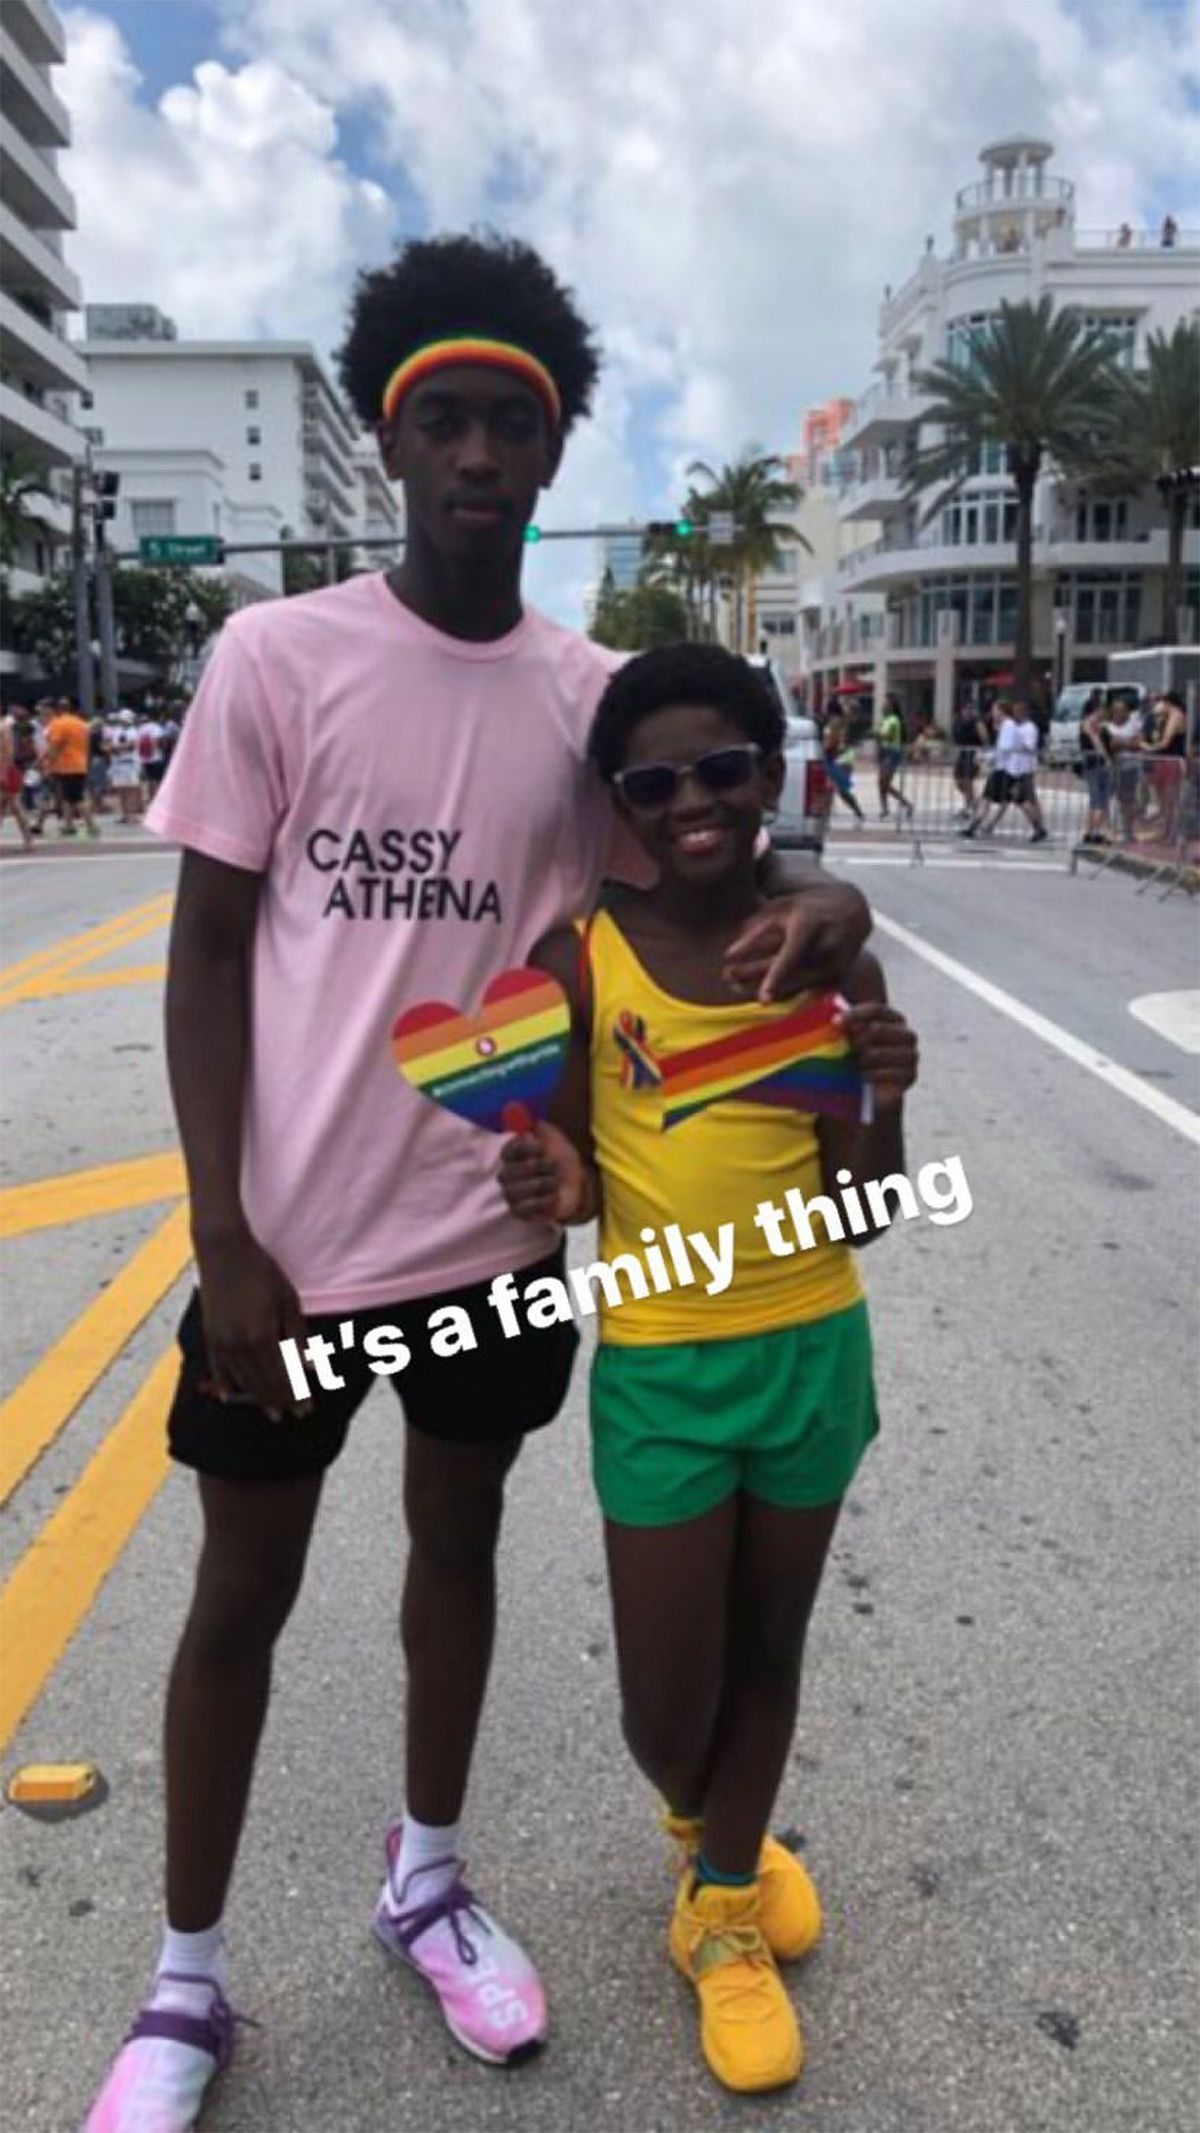 Dwyane Wade shows support for his son Zion at Miami Pride